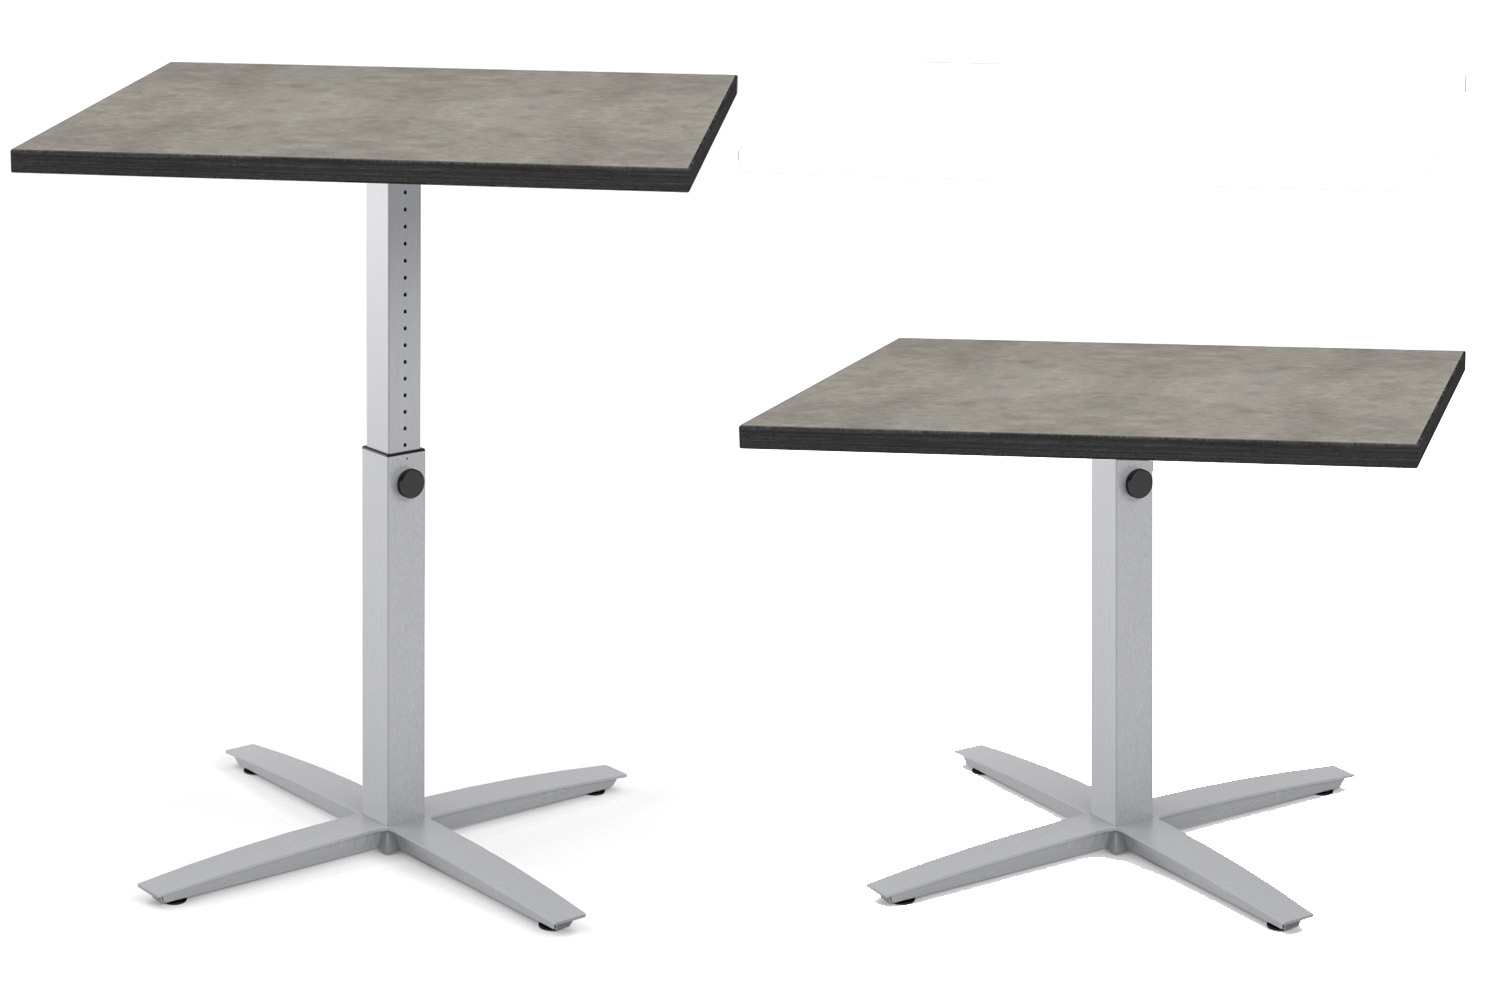 Abby, Healthcare, X-Base, Pin, High Table, Low Table